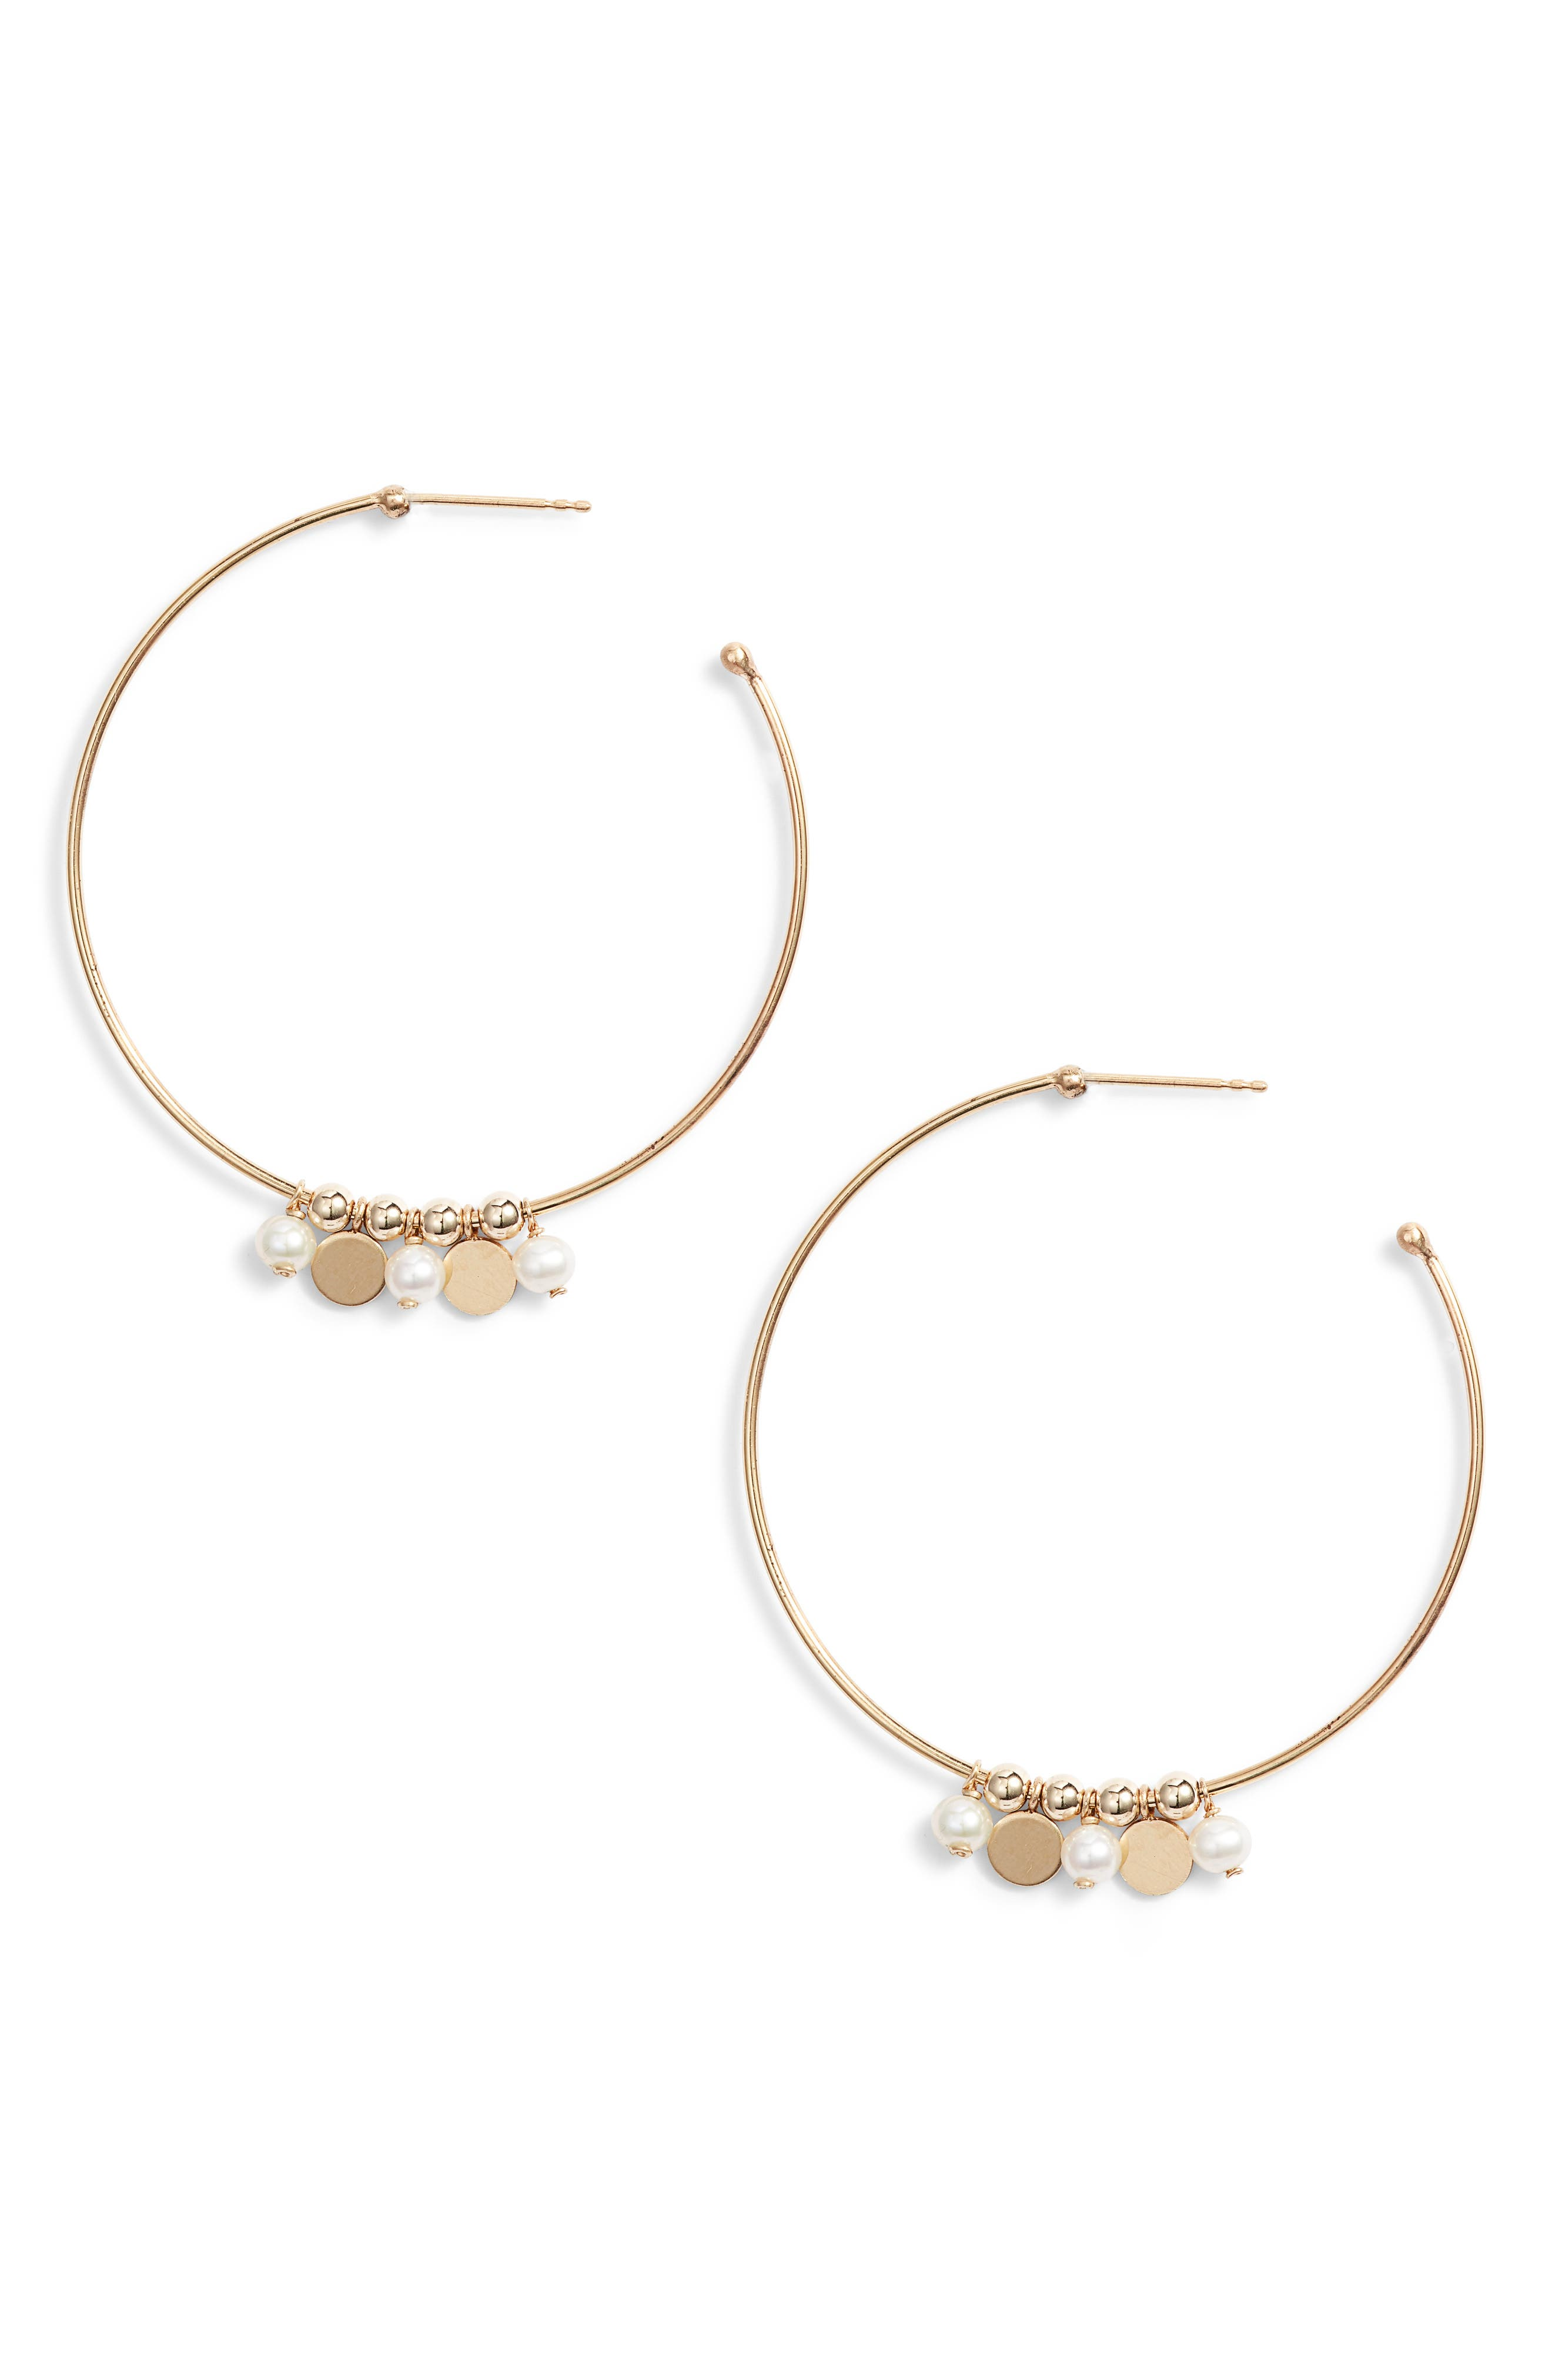 Confetti Pearl Gold Hoop Earrings,                         Main,                         color, YELLOW GOLD/ WHITE PEARL